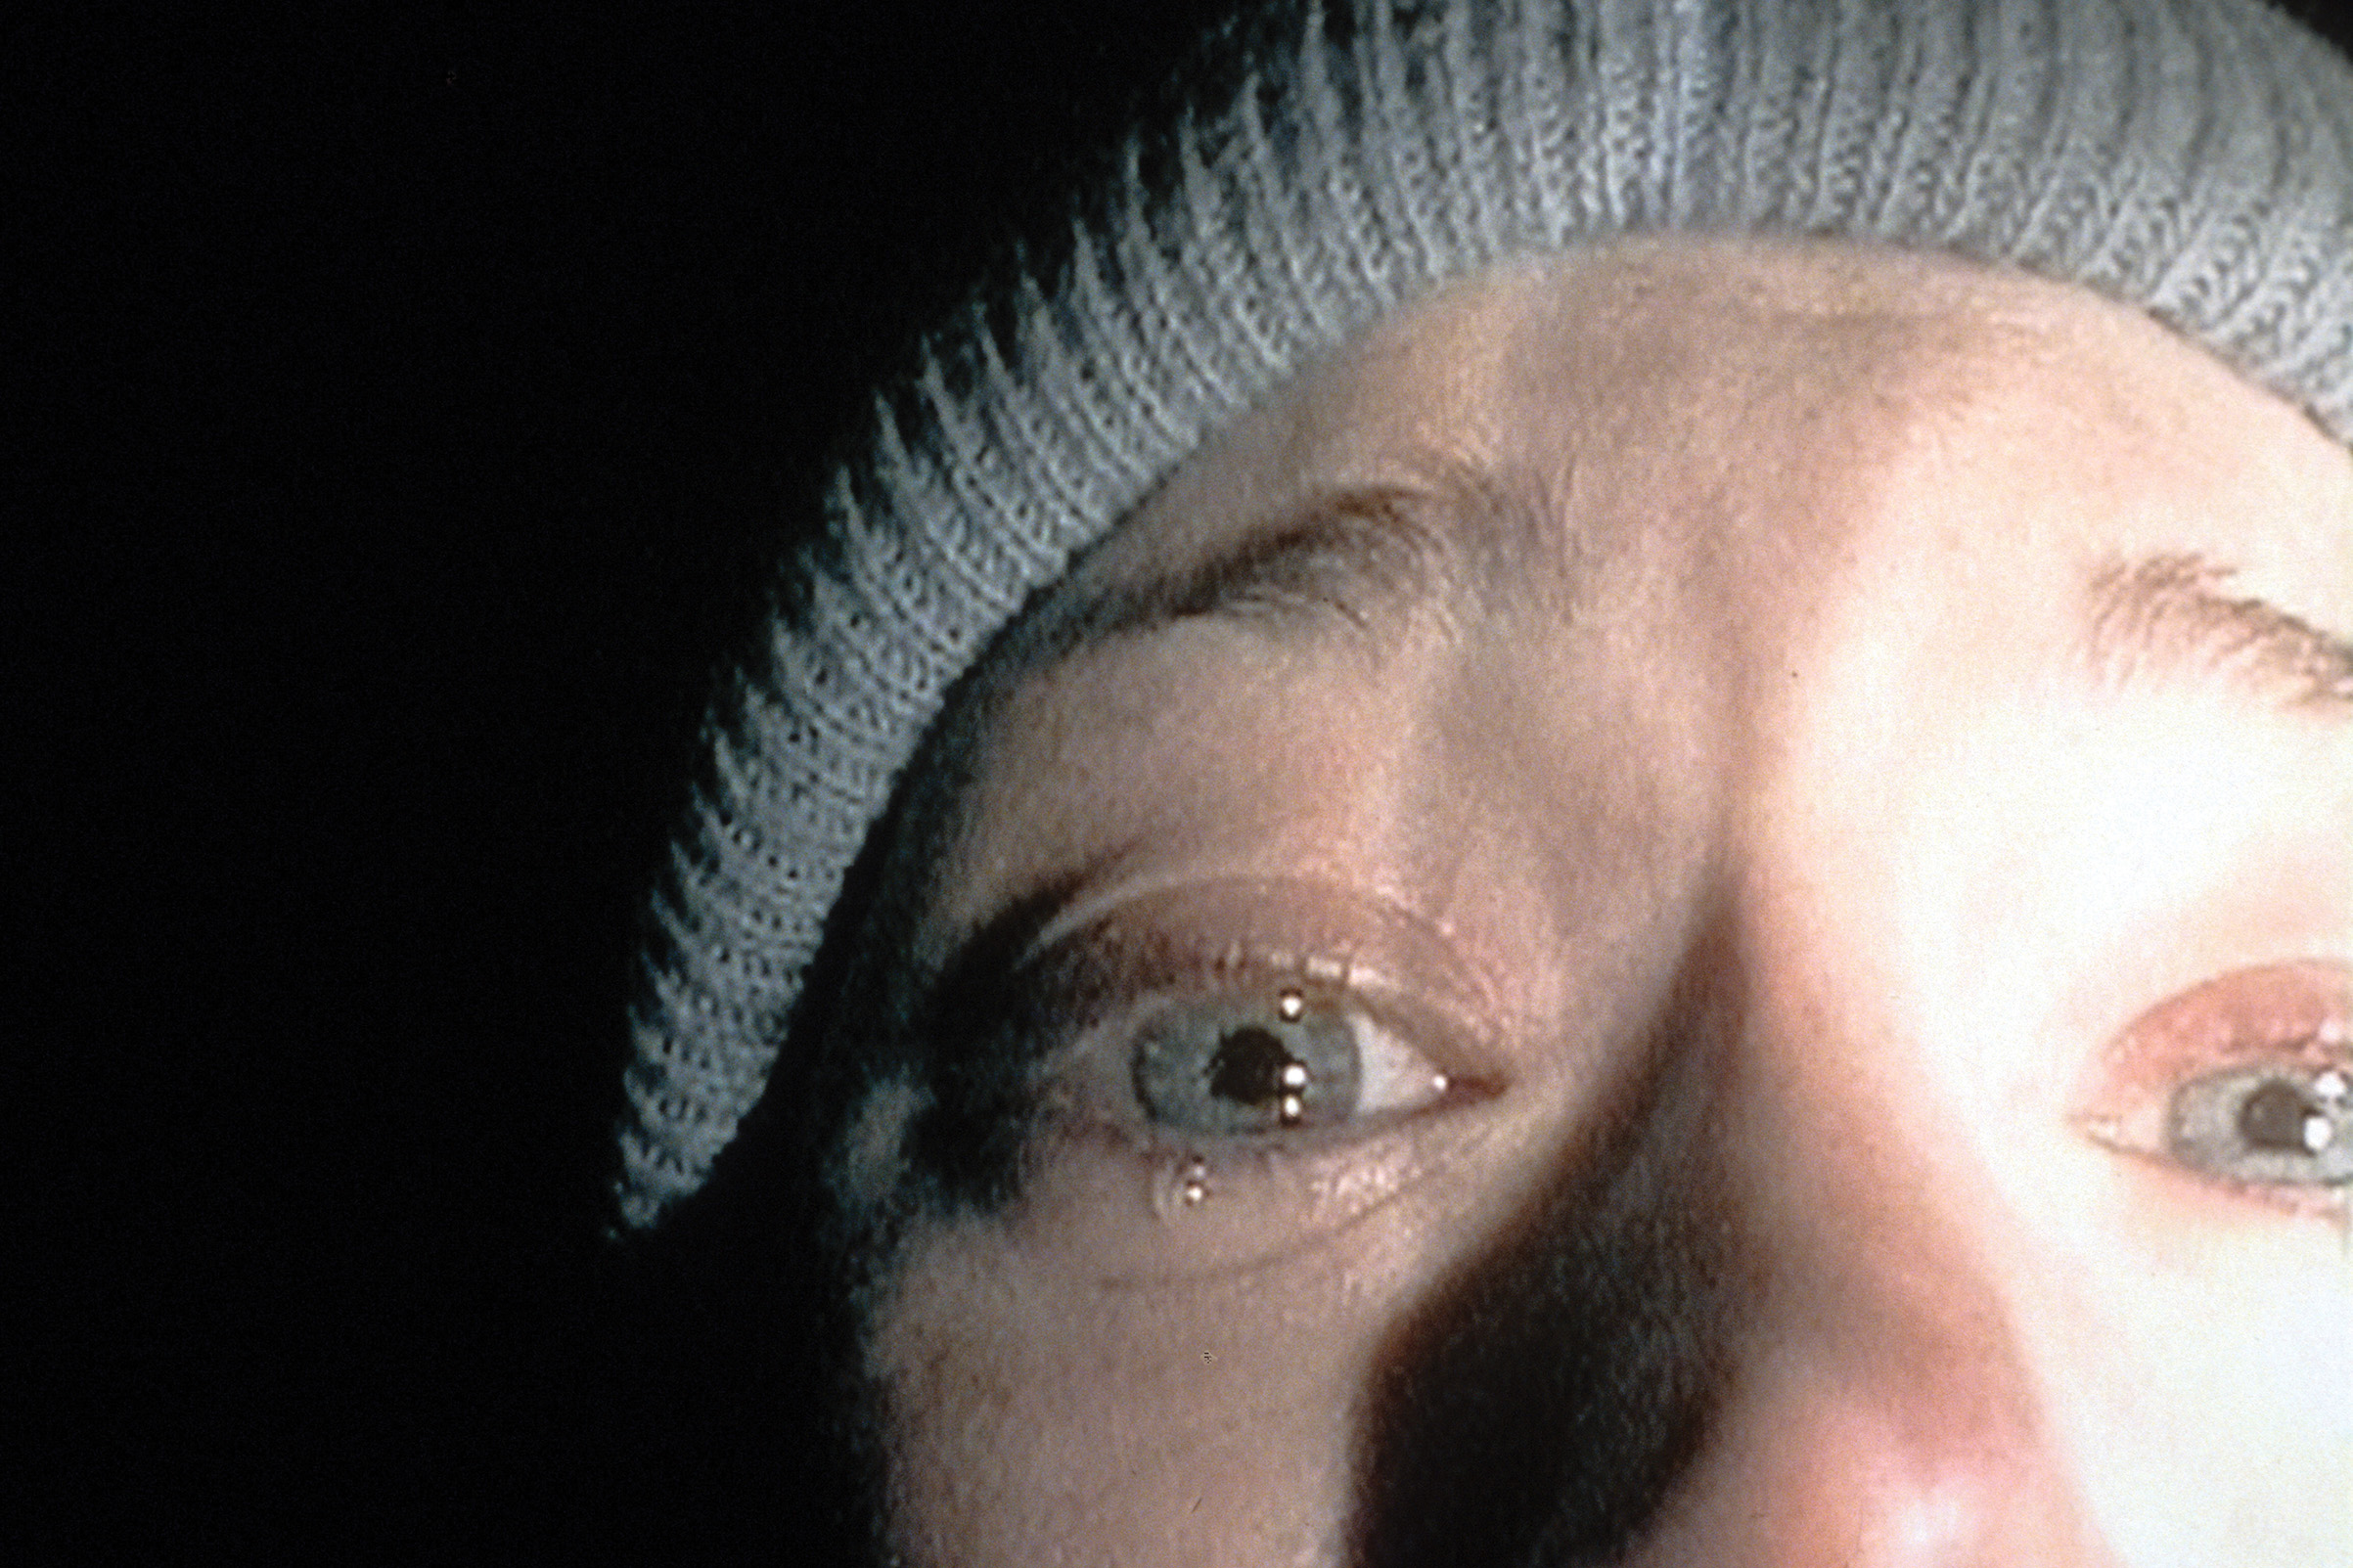 Heather Donahue in a scene from the film 'The Blair Witch Project', 1999.